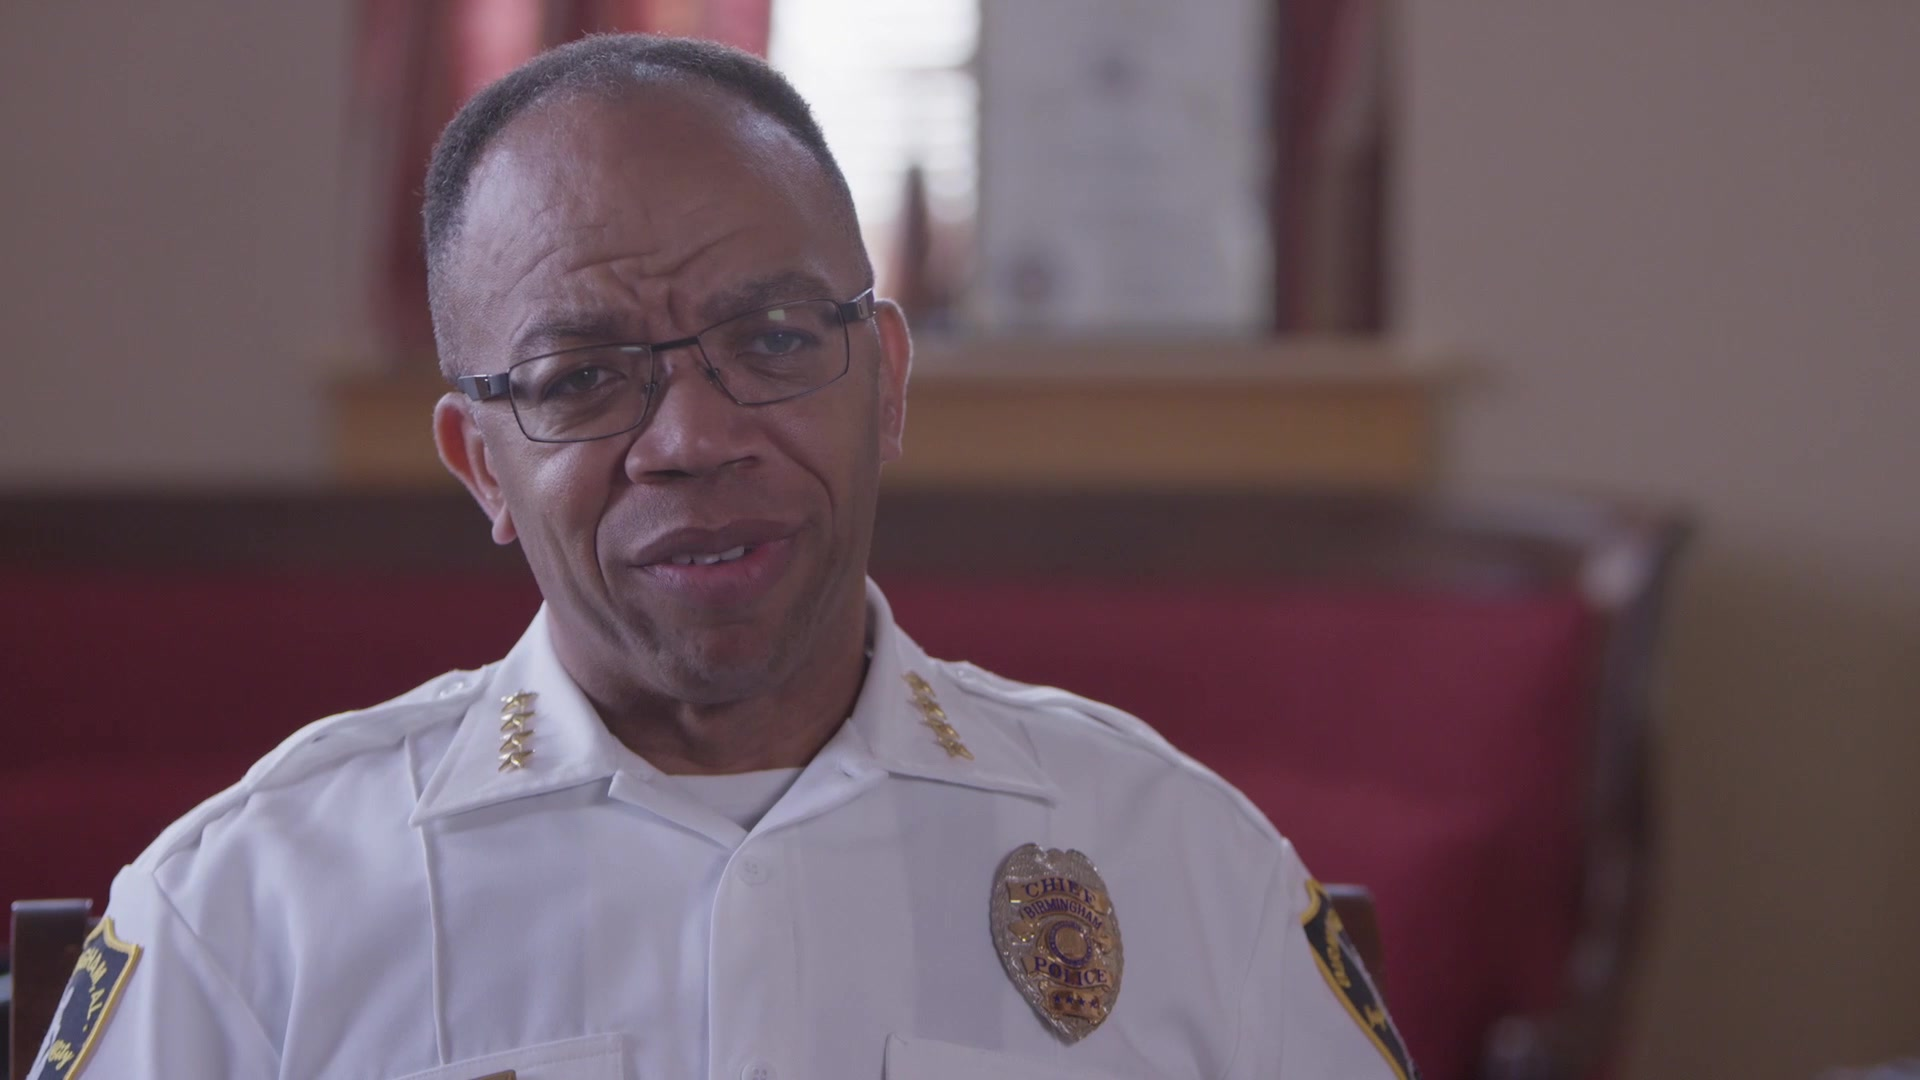 Hometown Hero: U.S. Army Reserve Maj. Gen. A.C. Roper, Commanding General for the 80th Training Command (TASS)and Chief of Police for the Birmingham Police Department (AL) Major Crimes, discusses the importance of goals and how the Army Reserve has taught him leadership skills to be successful in both his military and civilian career.